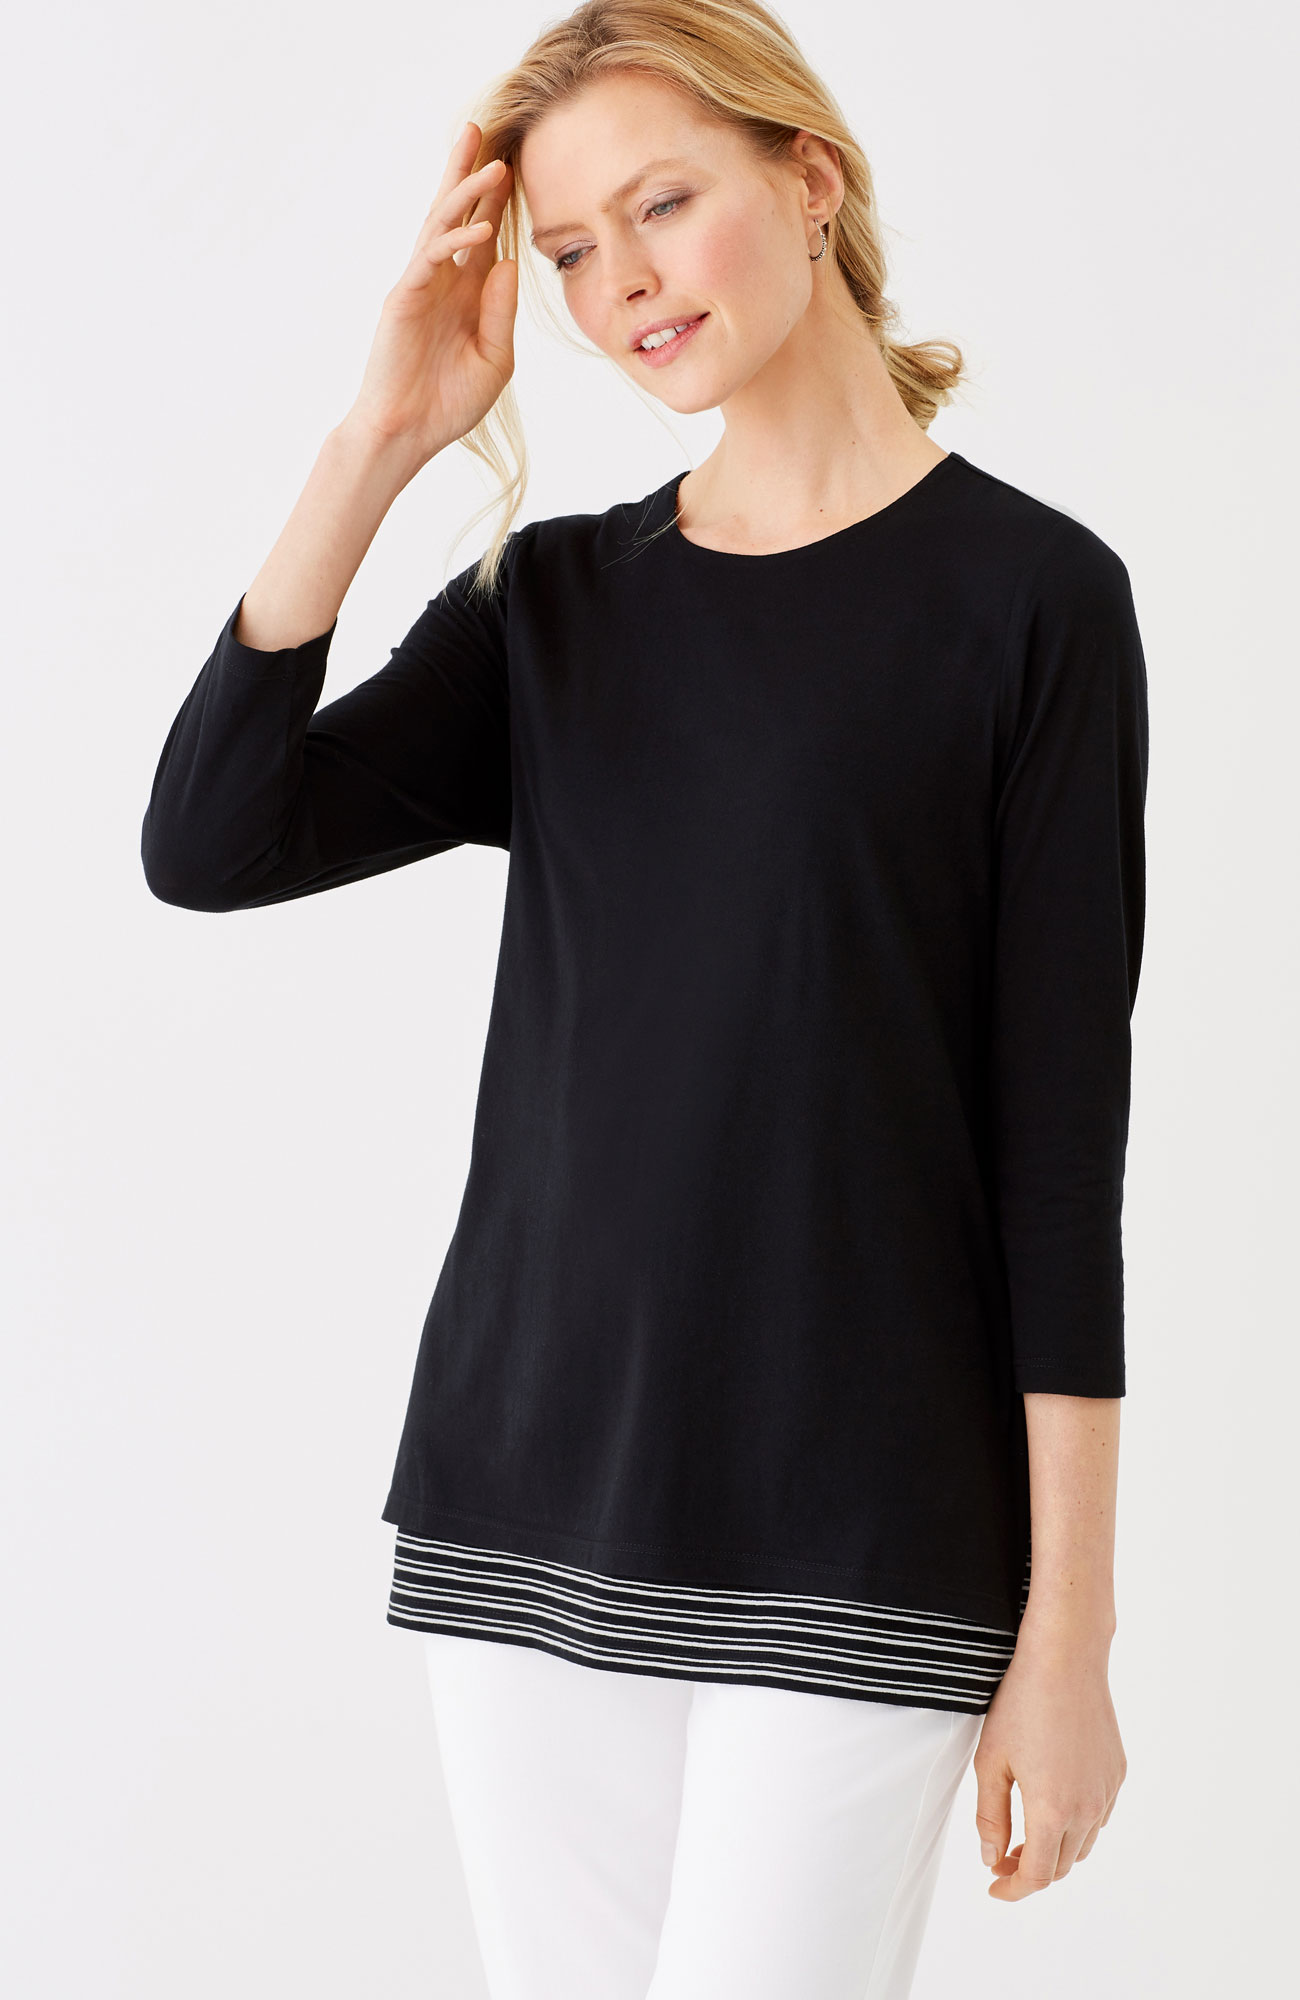 double-layer knit top